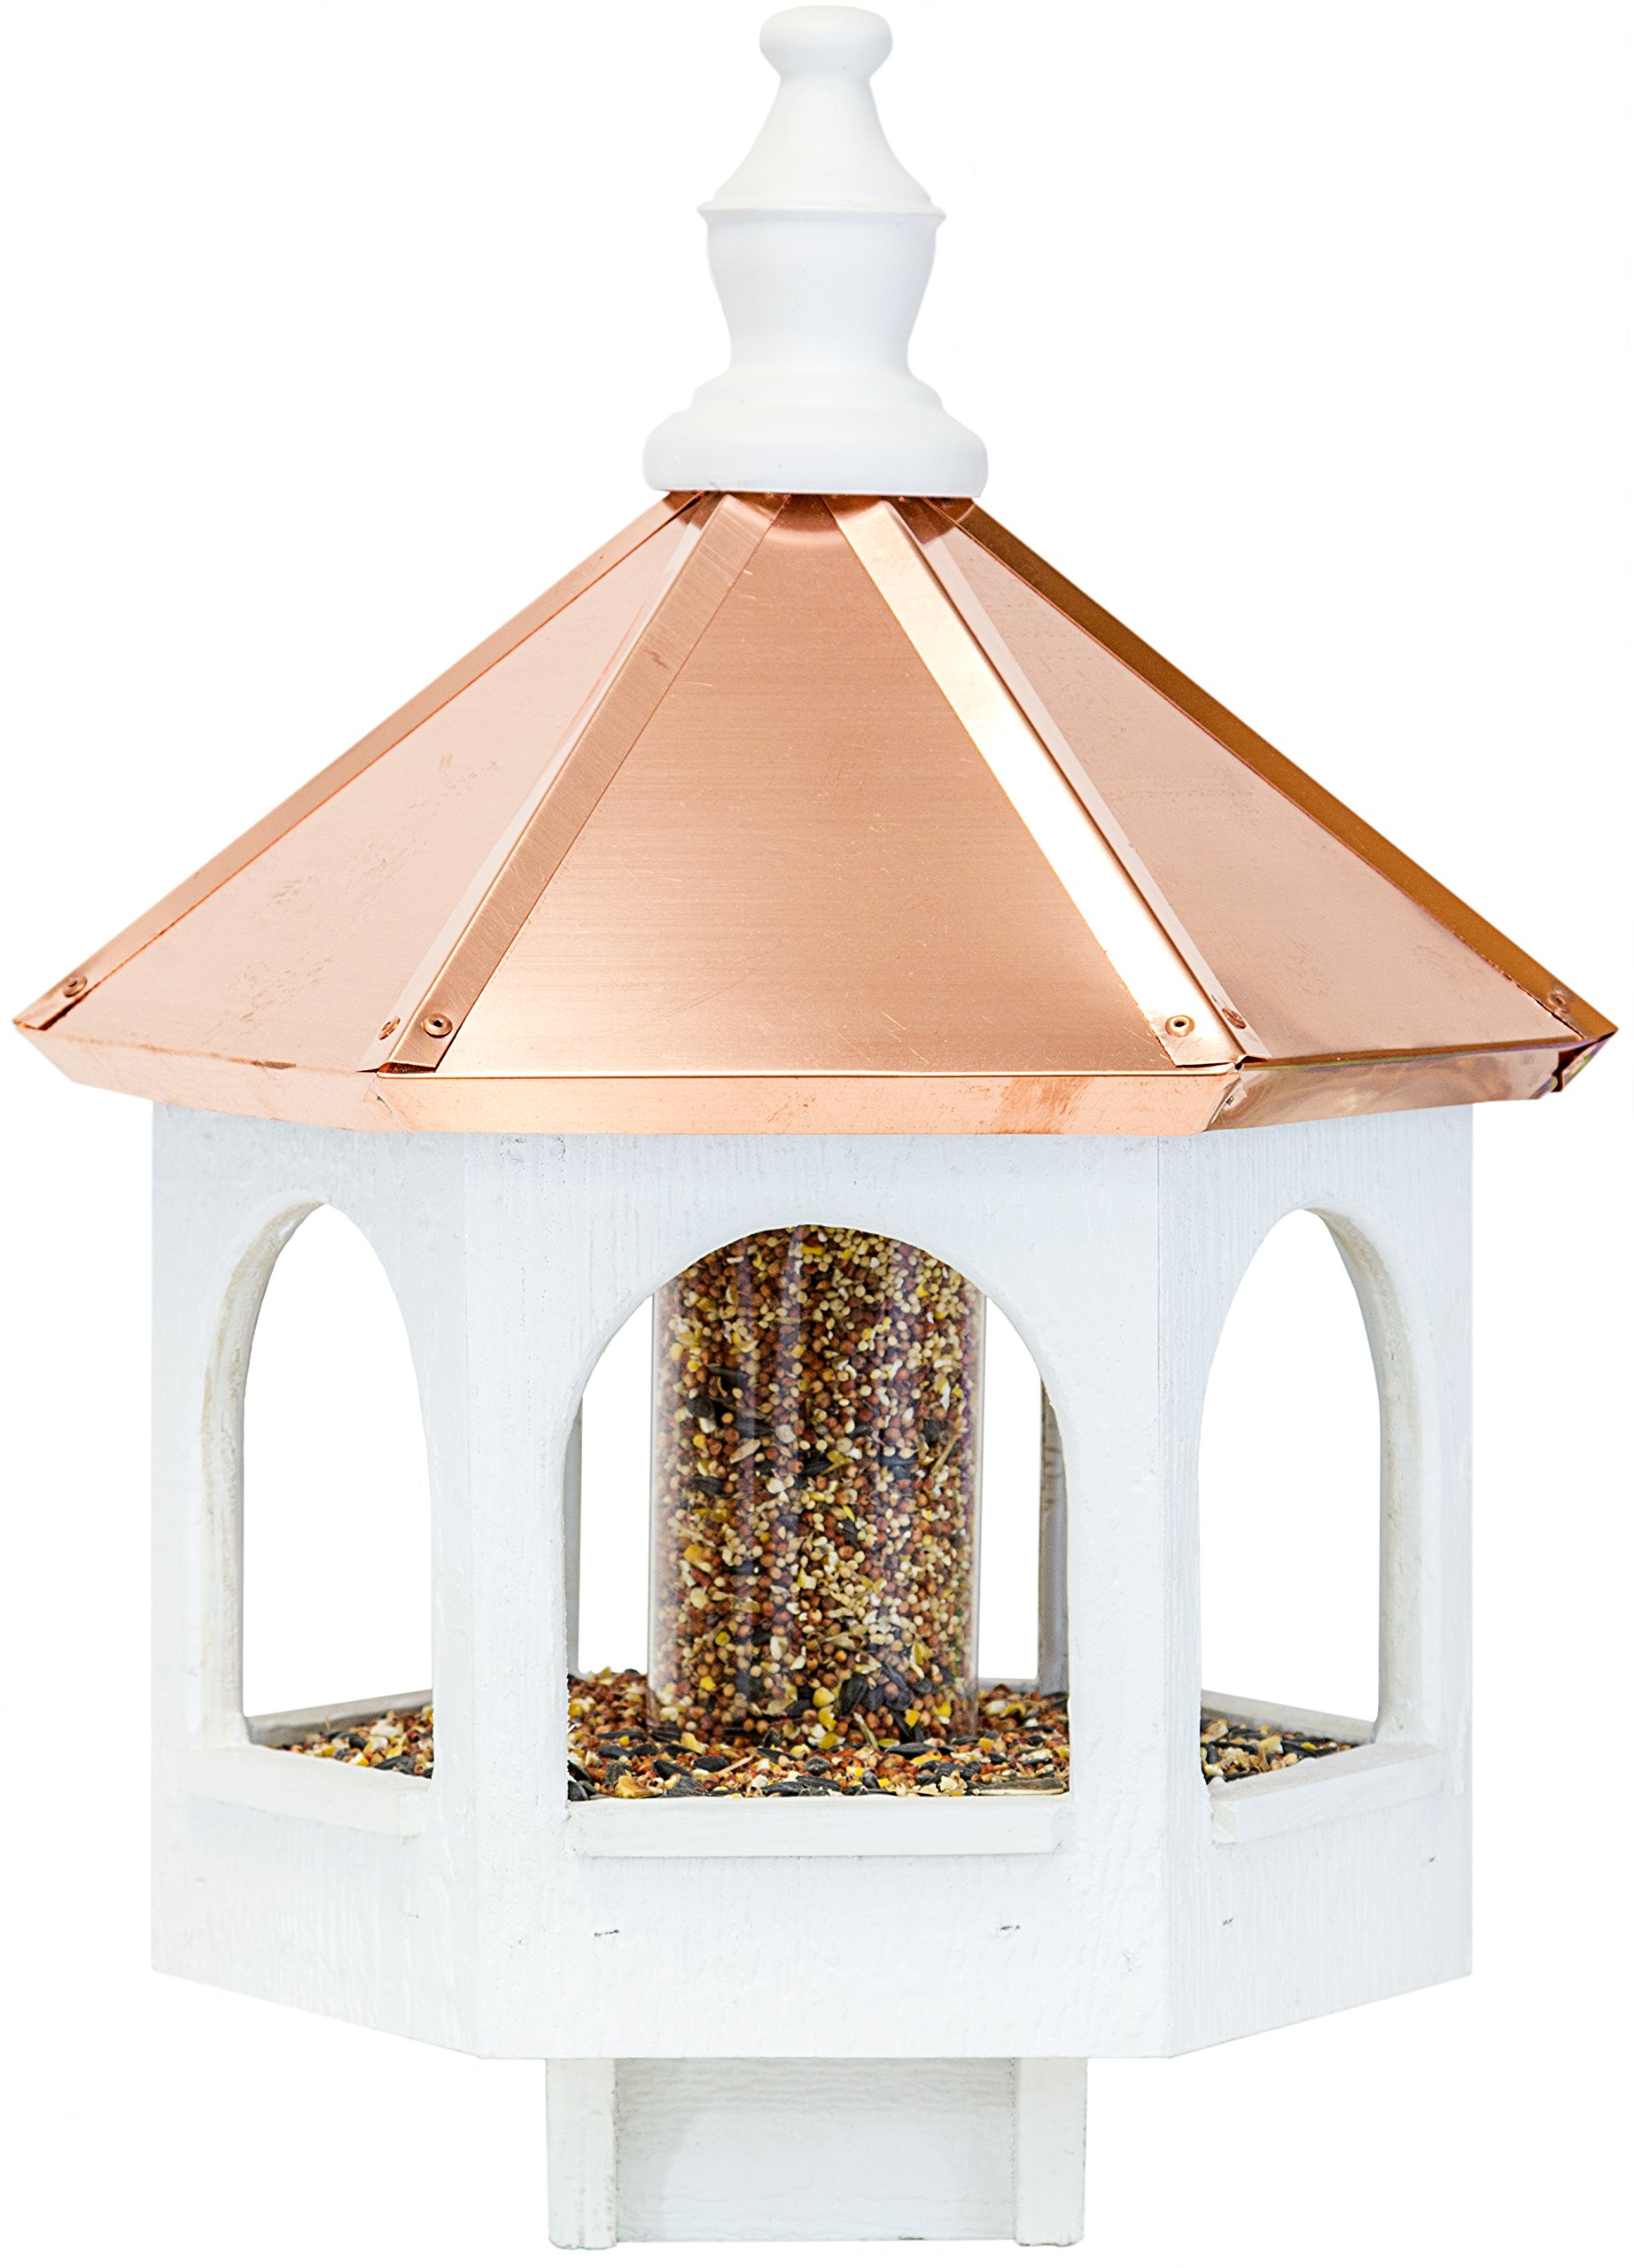 Amish 21'' Bird Feeder with Copper Roof, Handcrafted in the USA by Dress the Yard (Image #2)